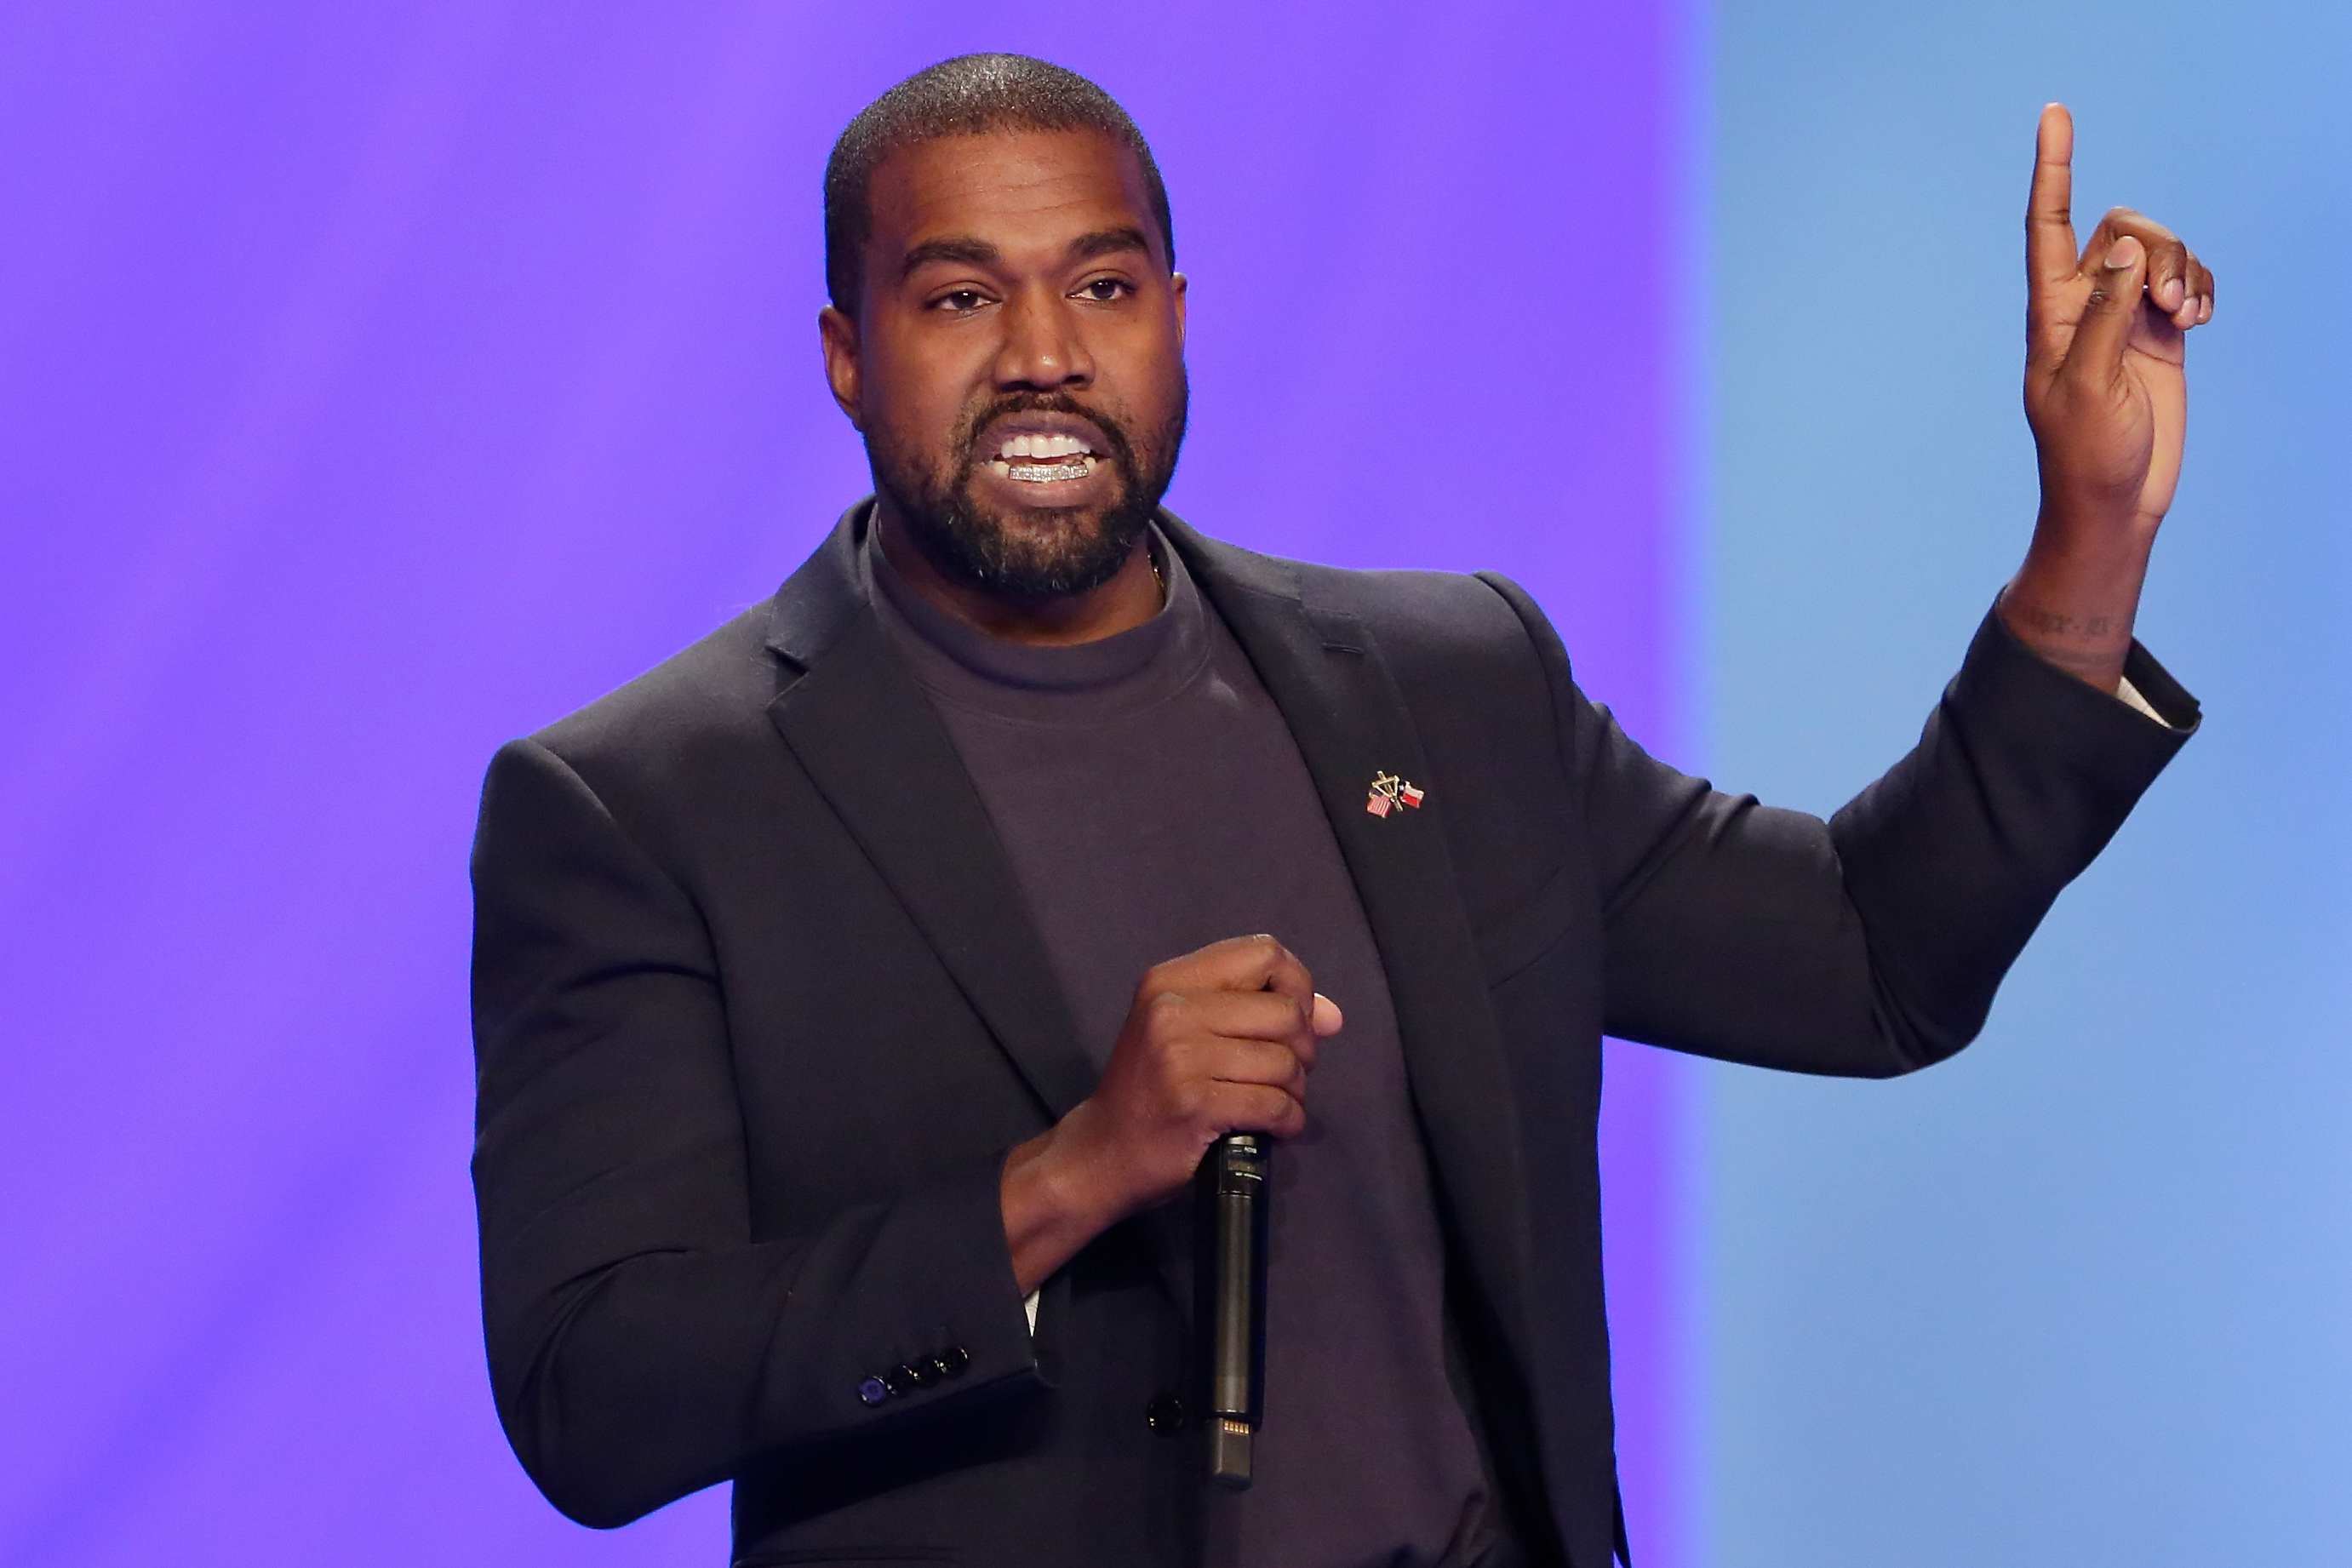 Kanye's church went on hiatus during his split from Kim and the pandemic